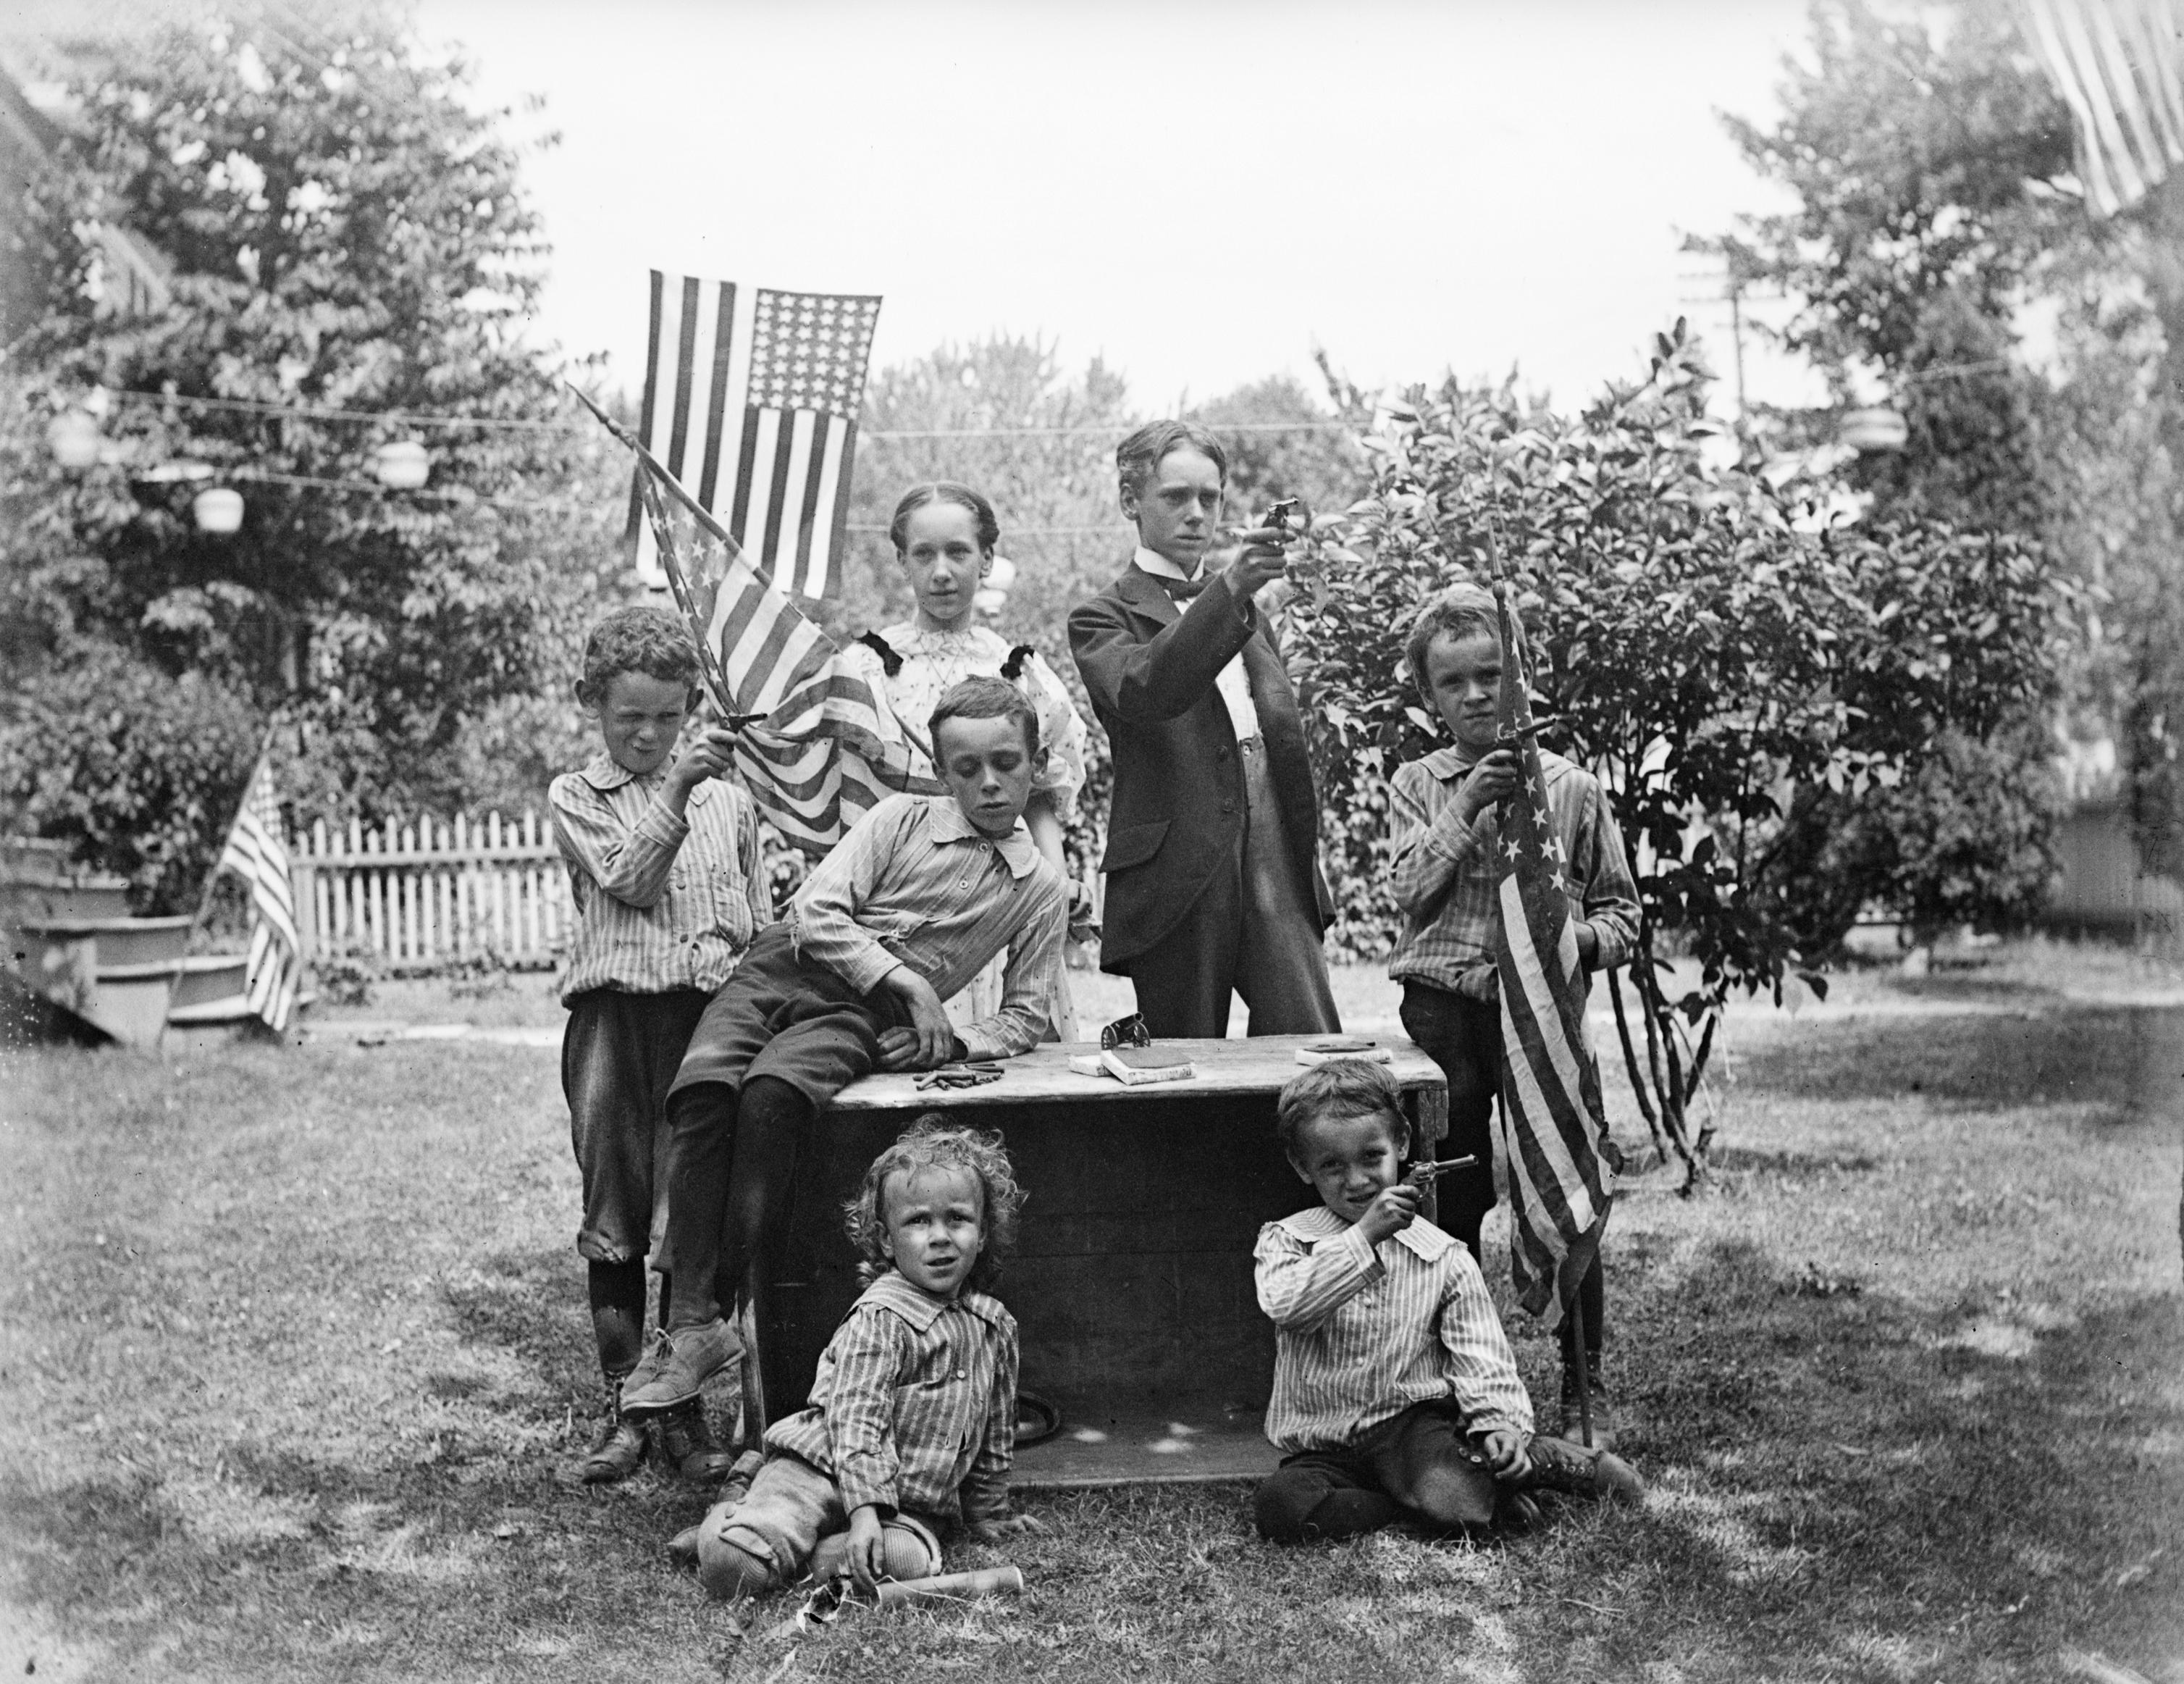 <p>Family with pistols and flags get ready for their Fourth of July celebration, circa 1880s (Photo: Bettmann Archive/Getty Images) </p>